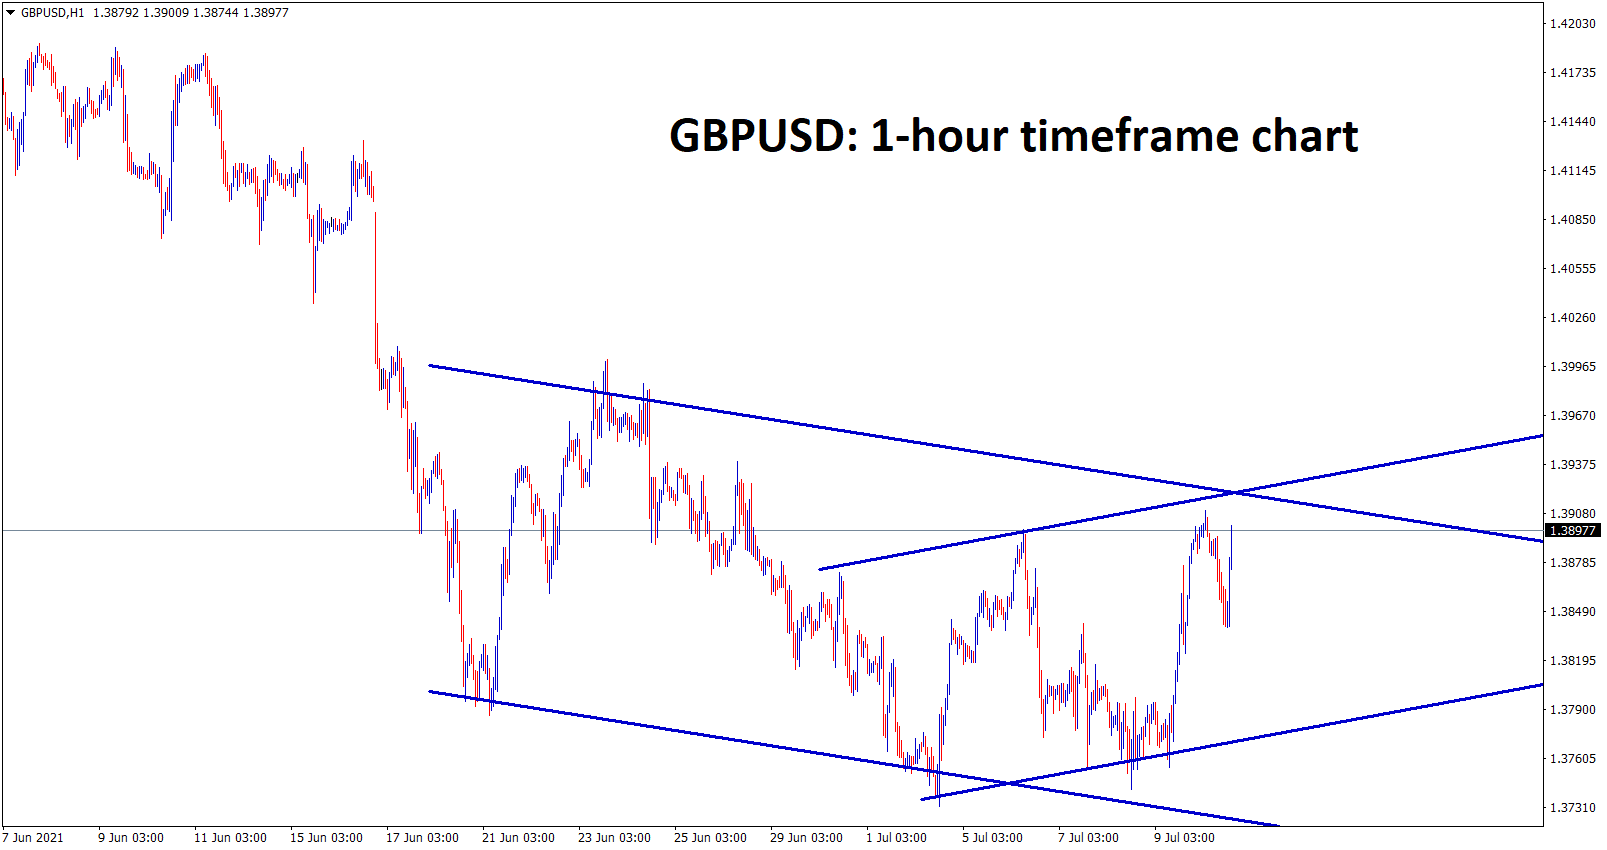 GBPUSD is moving between the channel ranges in the hourly chart